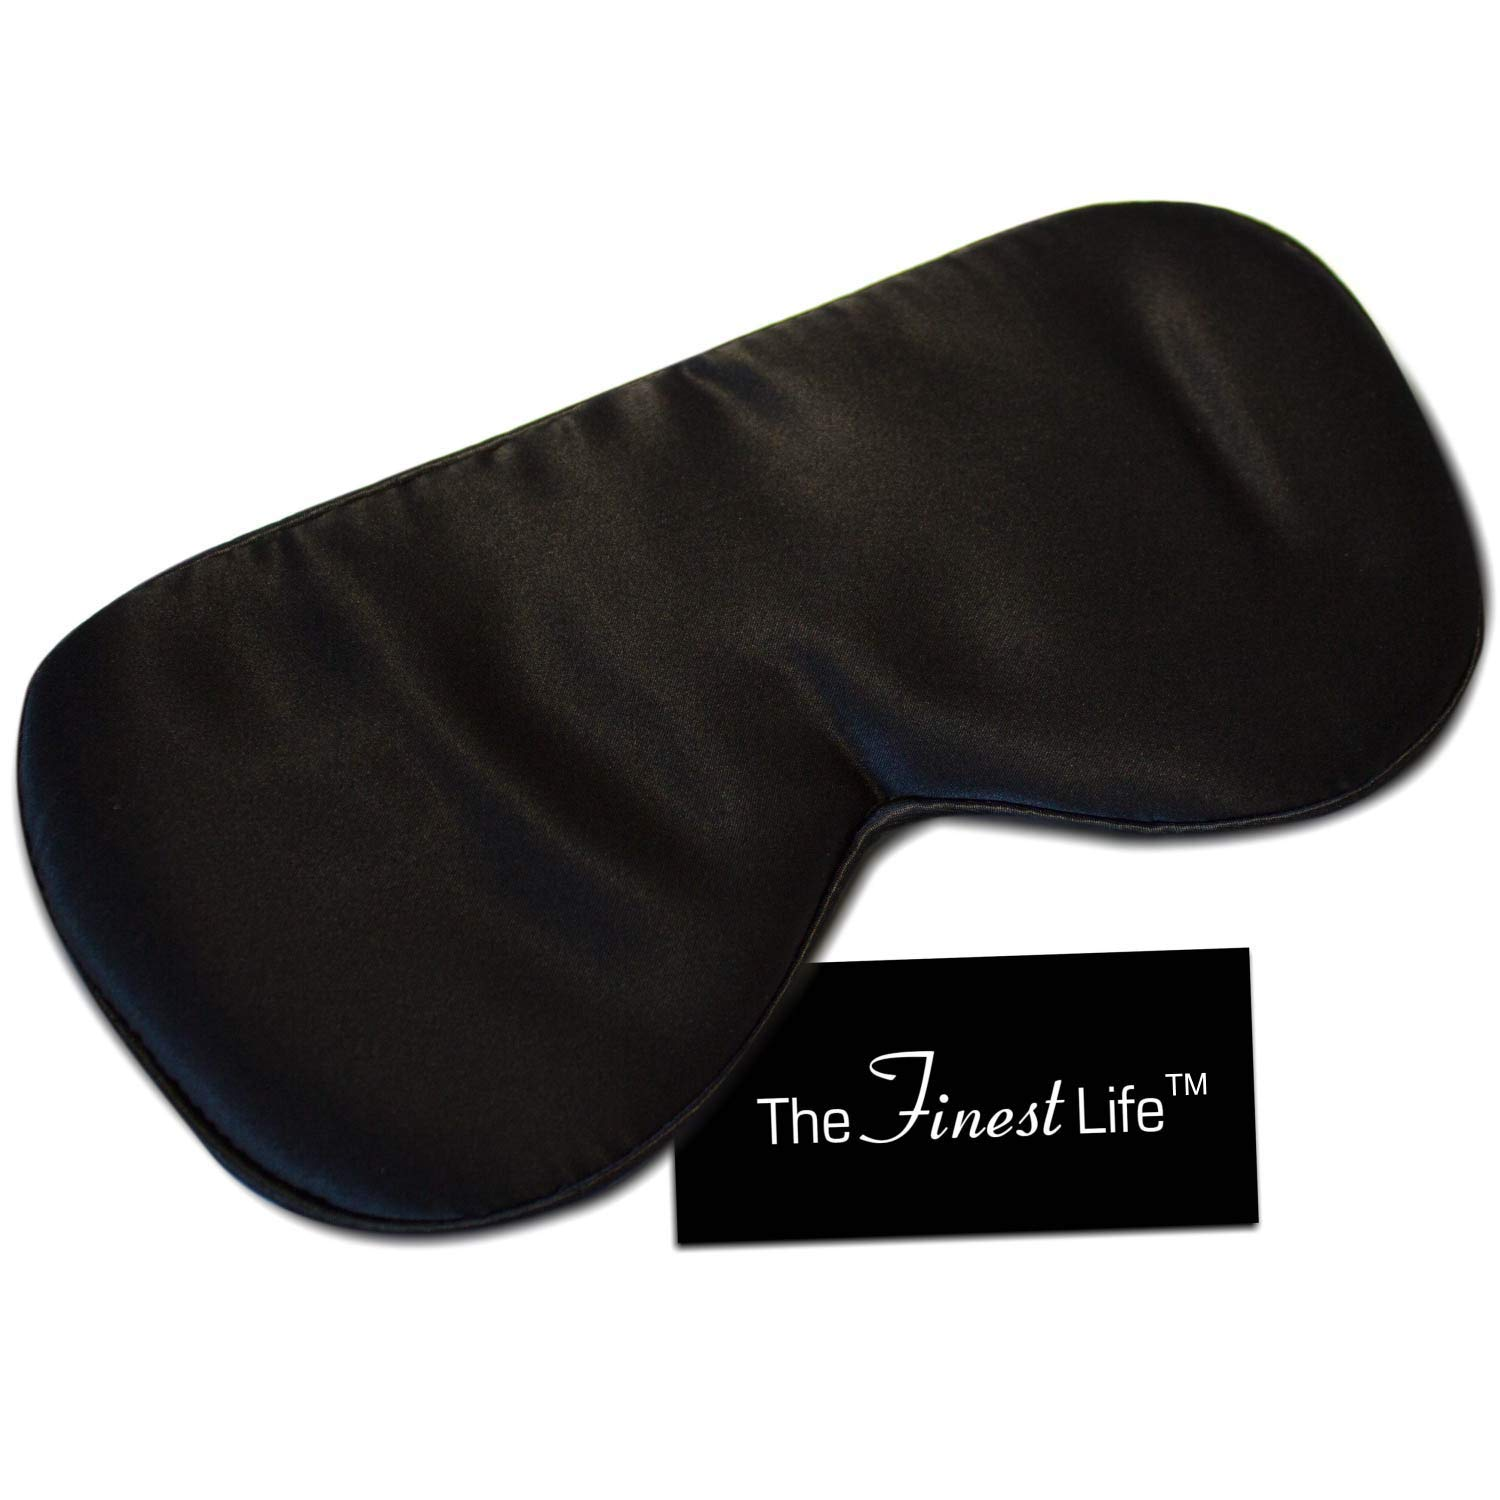 The Finest Life Natural Silk Sleep Mask Great for Sleep, Premium Quality Eye Mask with Adjustable Strap, Sleeping Aid, Blindfold, Perfect for Women, Men, Girls, Boys